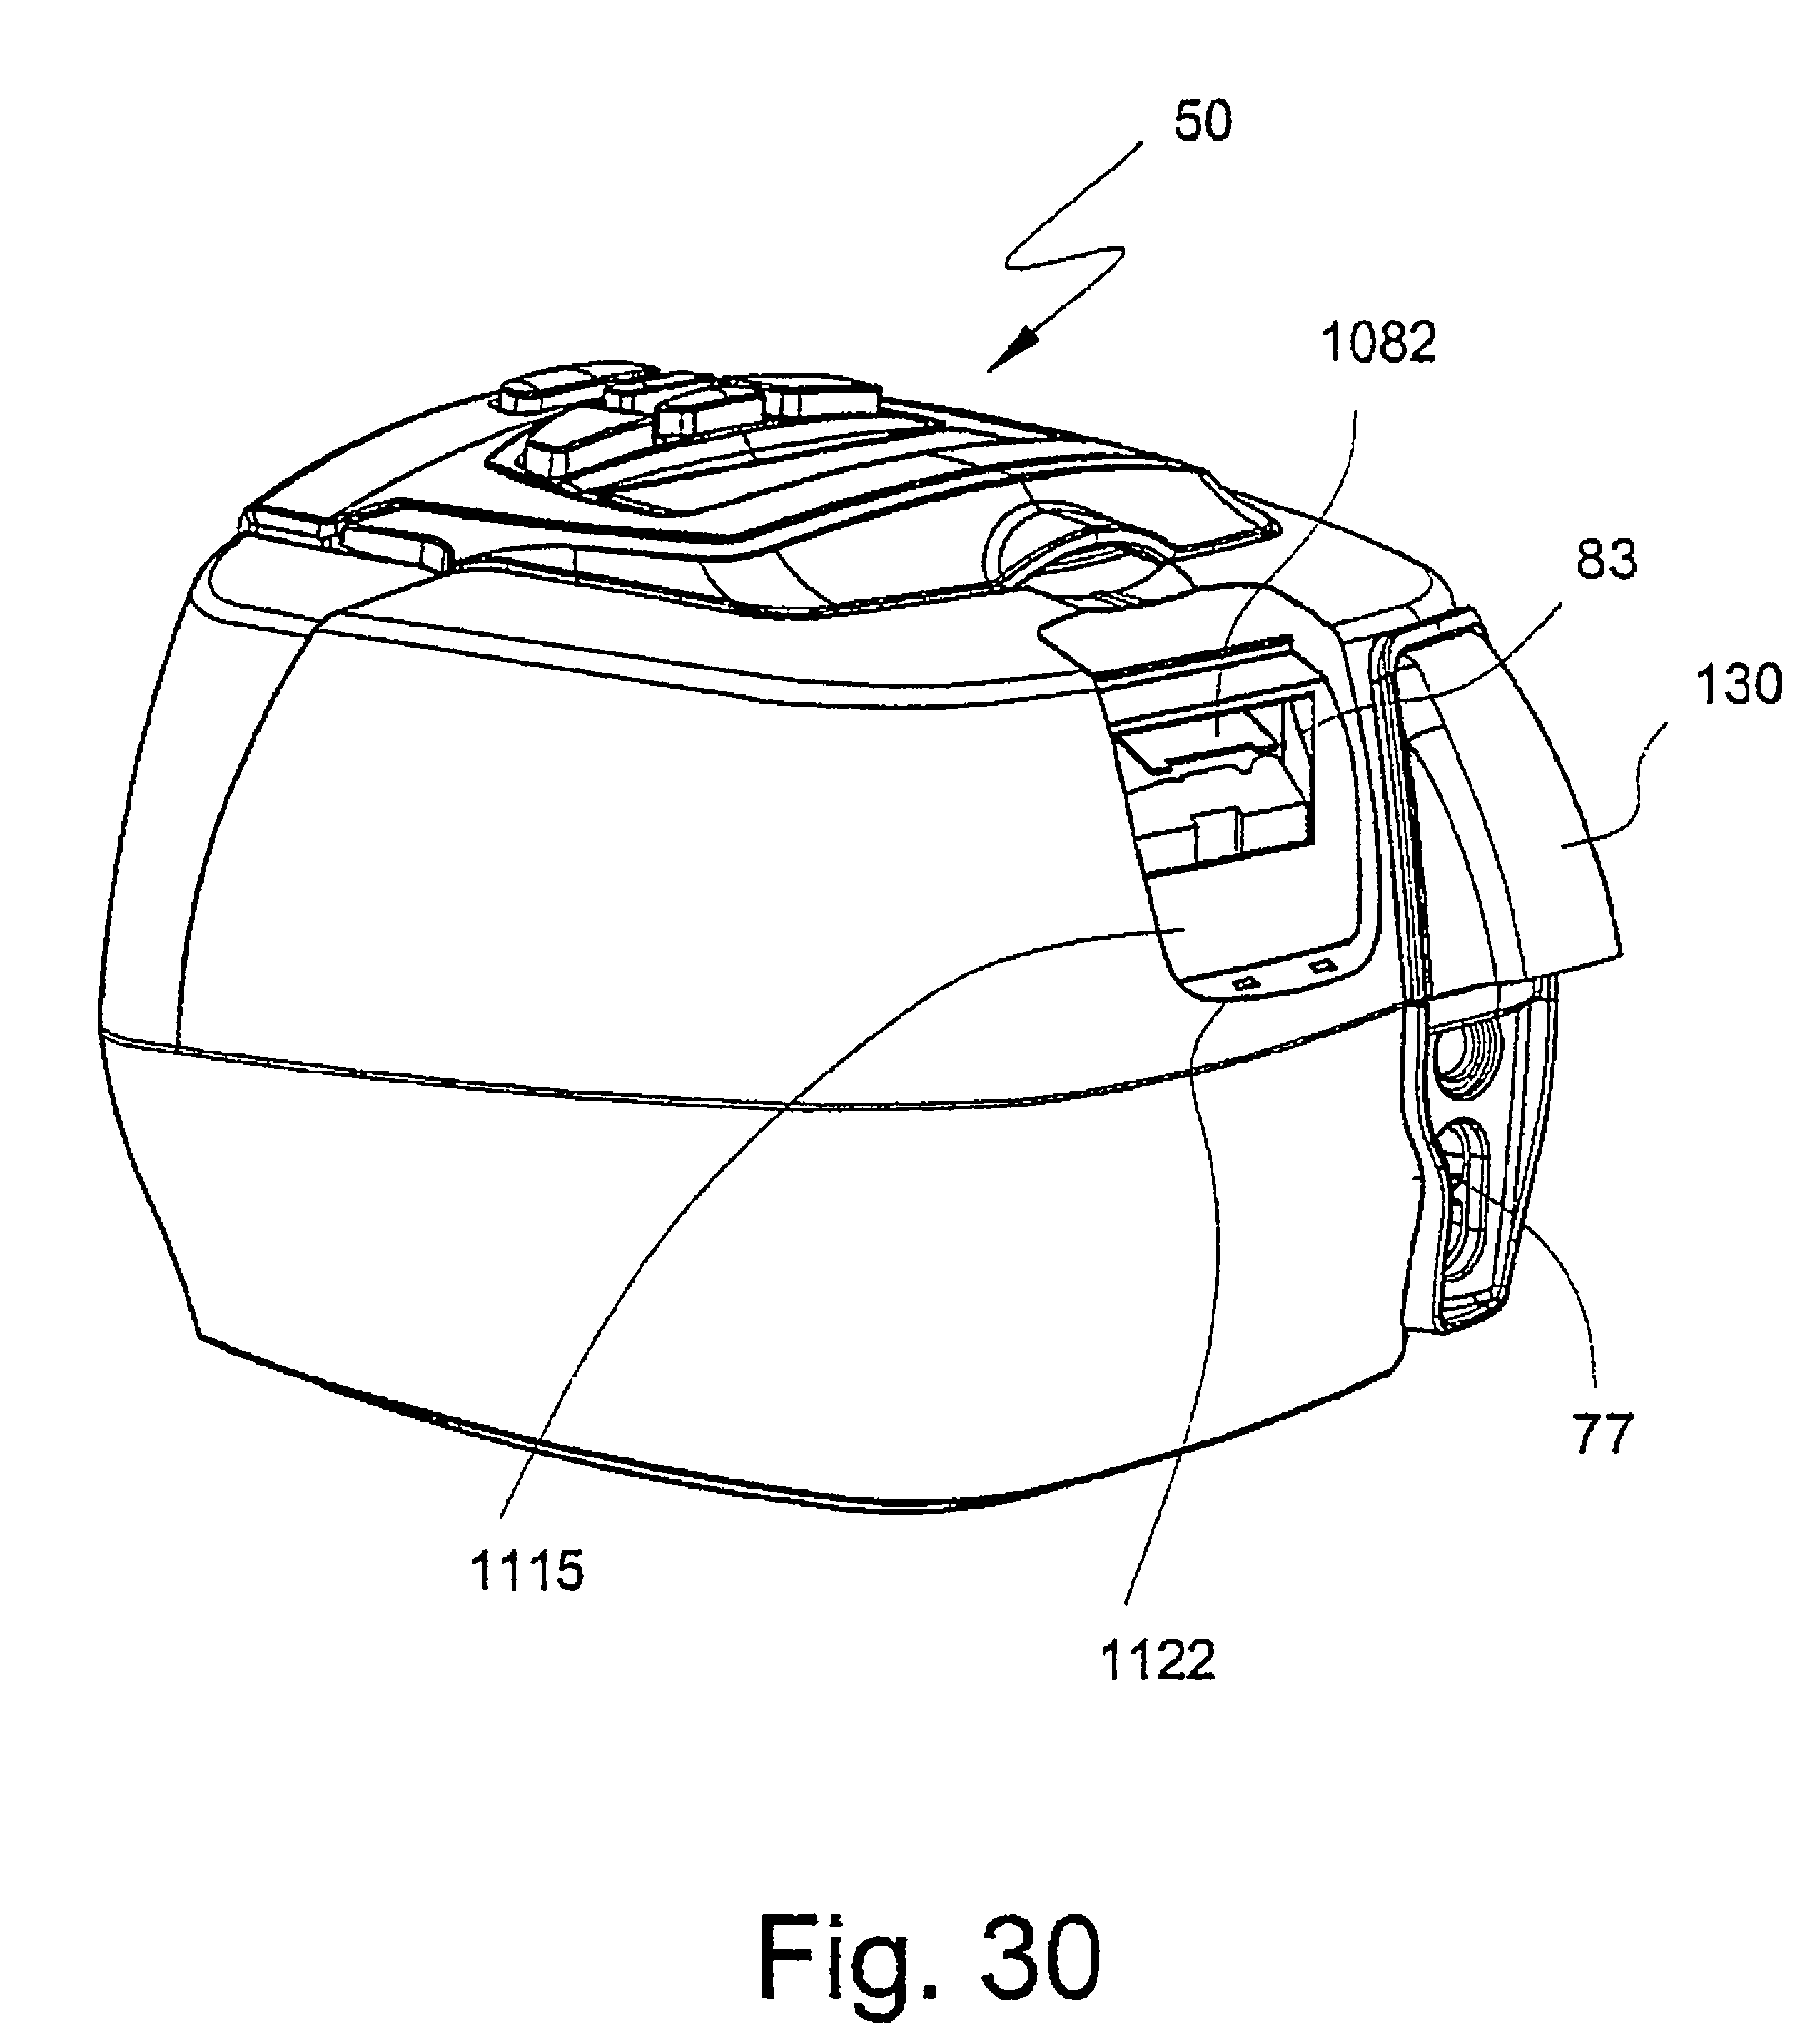 patent us 8,006,691 b2Sunbeam Heating Pad Wiring Diagram Further Fisher And Paykel Cpap #19